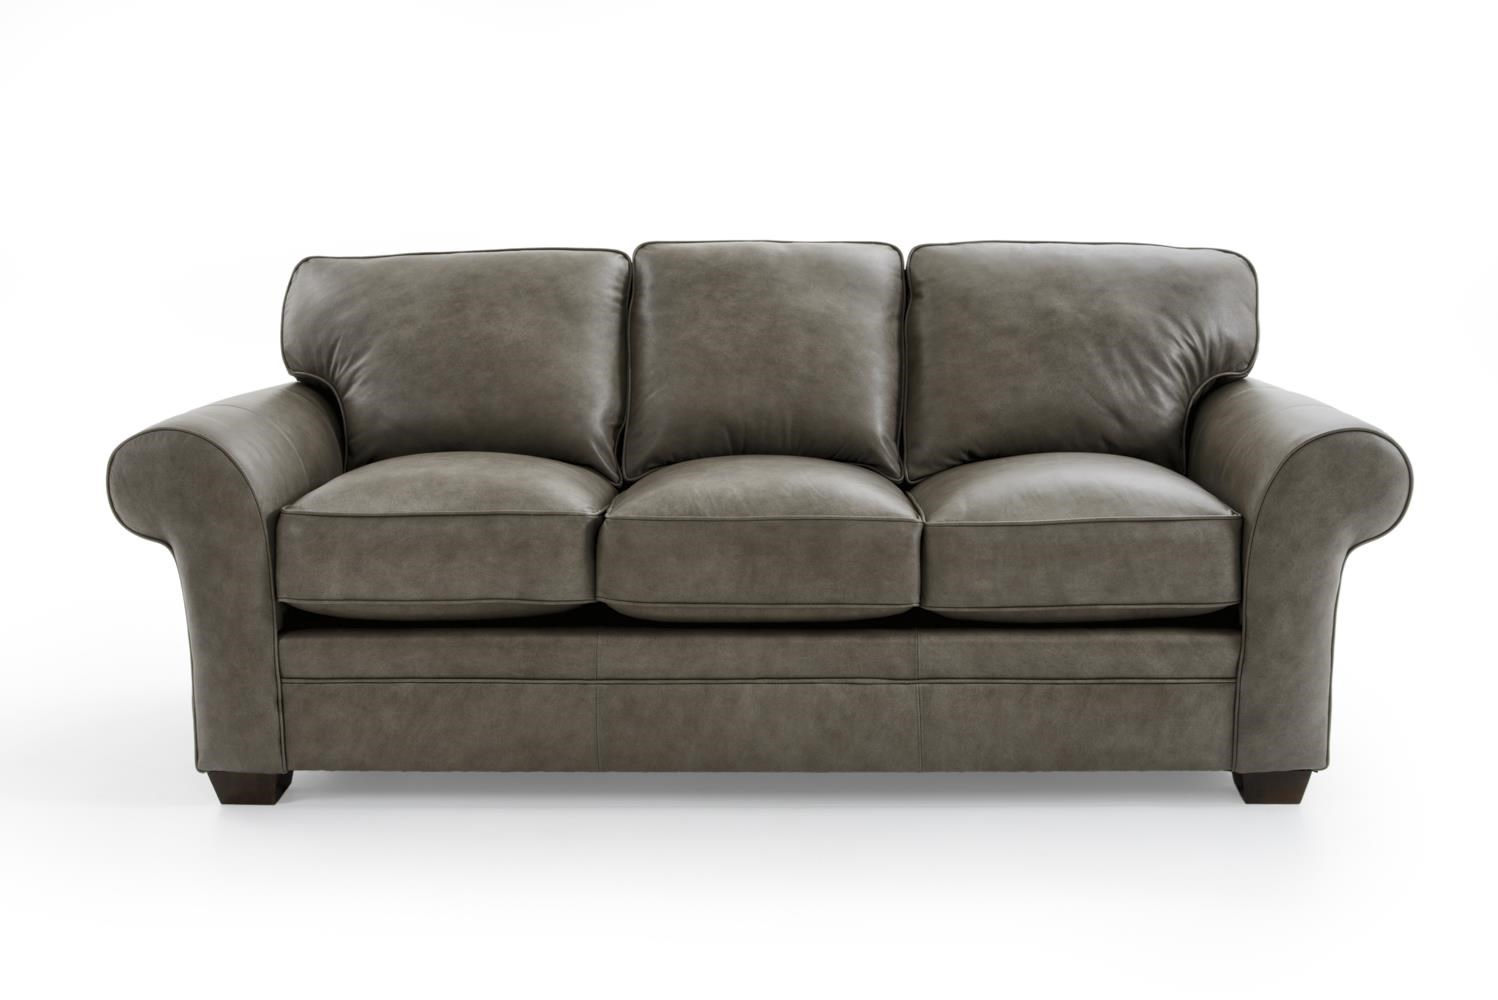 Broyhill Furniture Zachary Upholstered Sofa - Item Number: L7902-3 0016-95